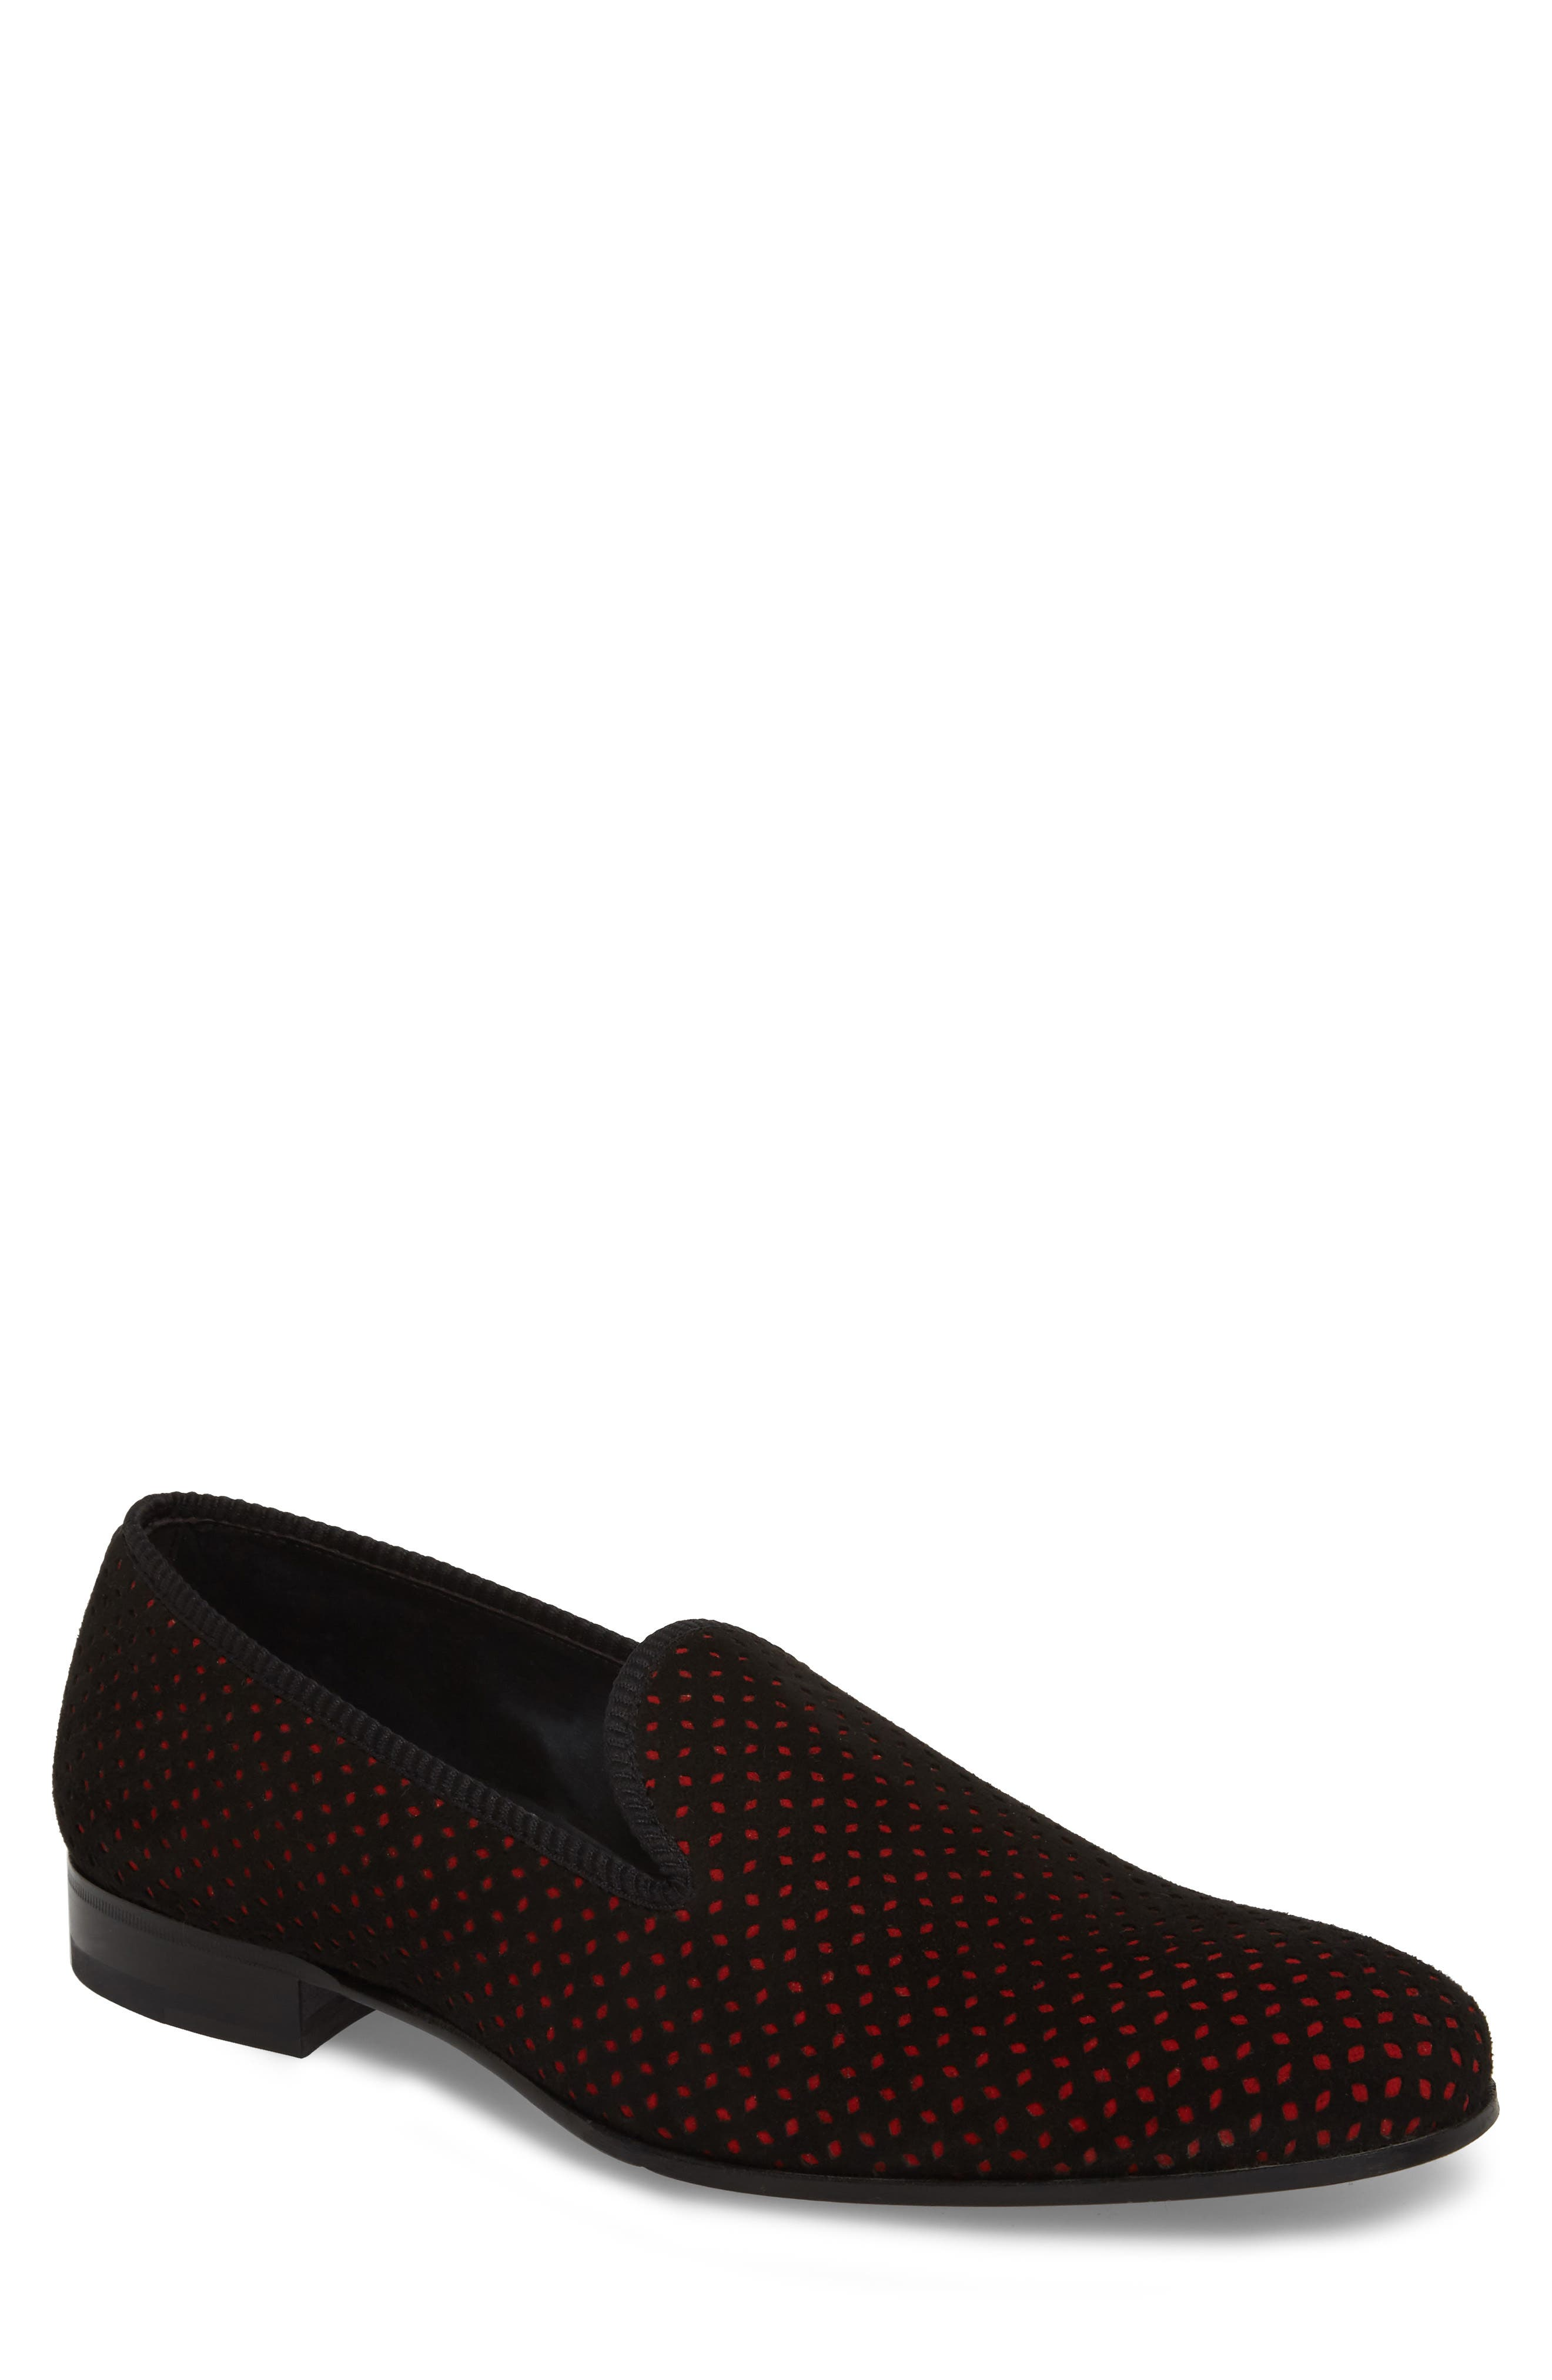 MEZLAN Cibeles Venetian Loafer in Black/ Red Suede